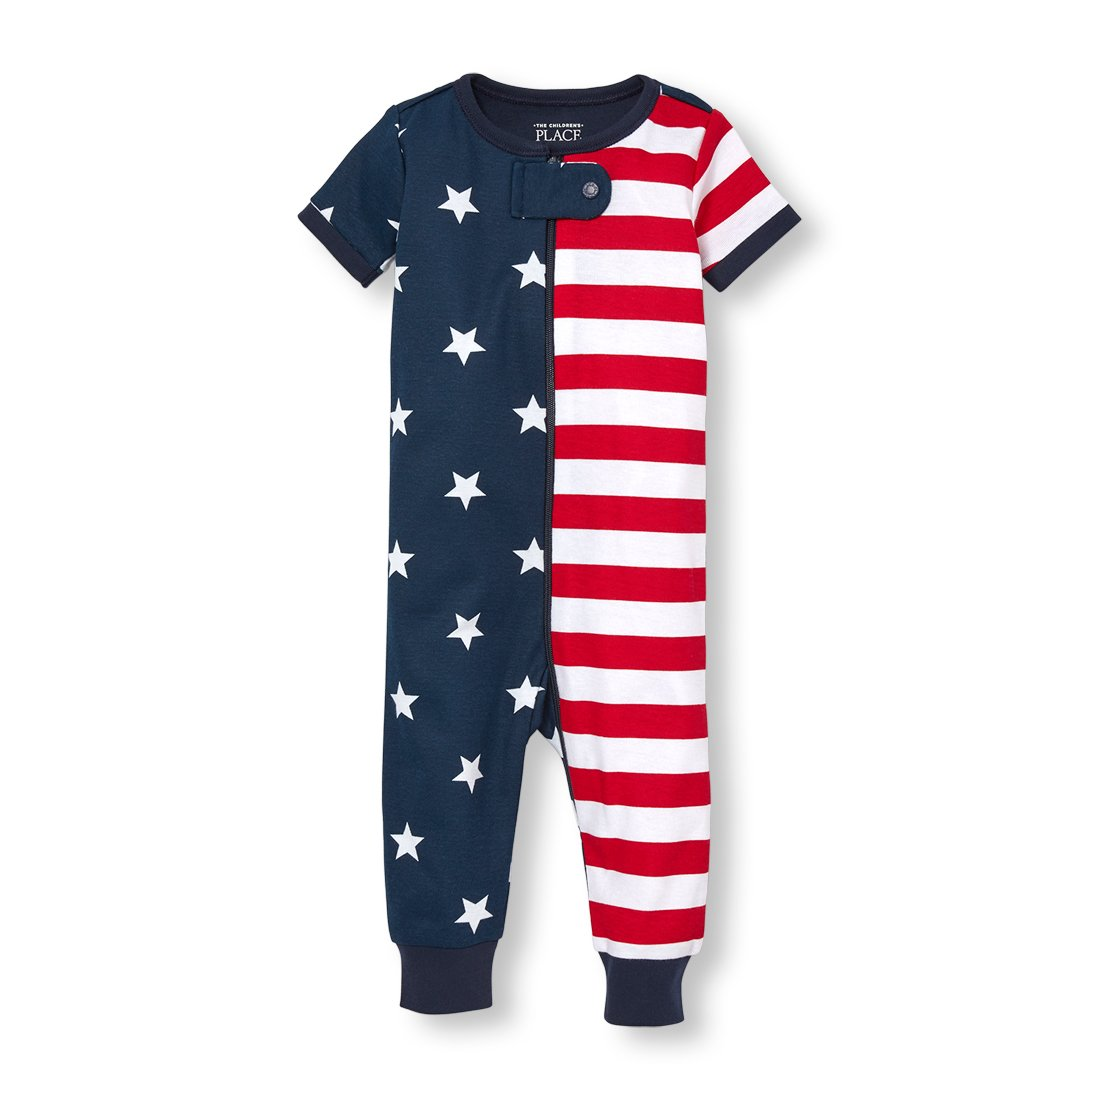 690e38f2eb22 Amazon.com  The Children s Place Baby Infant Short Sleeve One-Piece ...